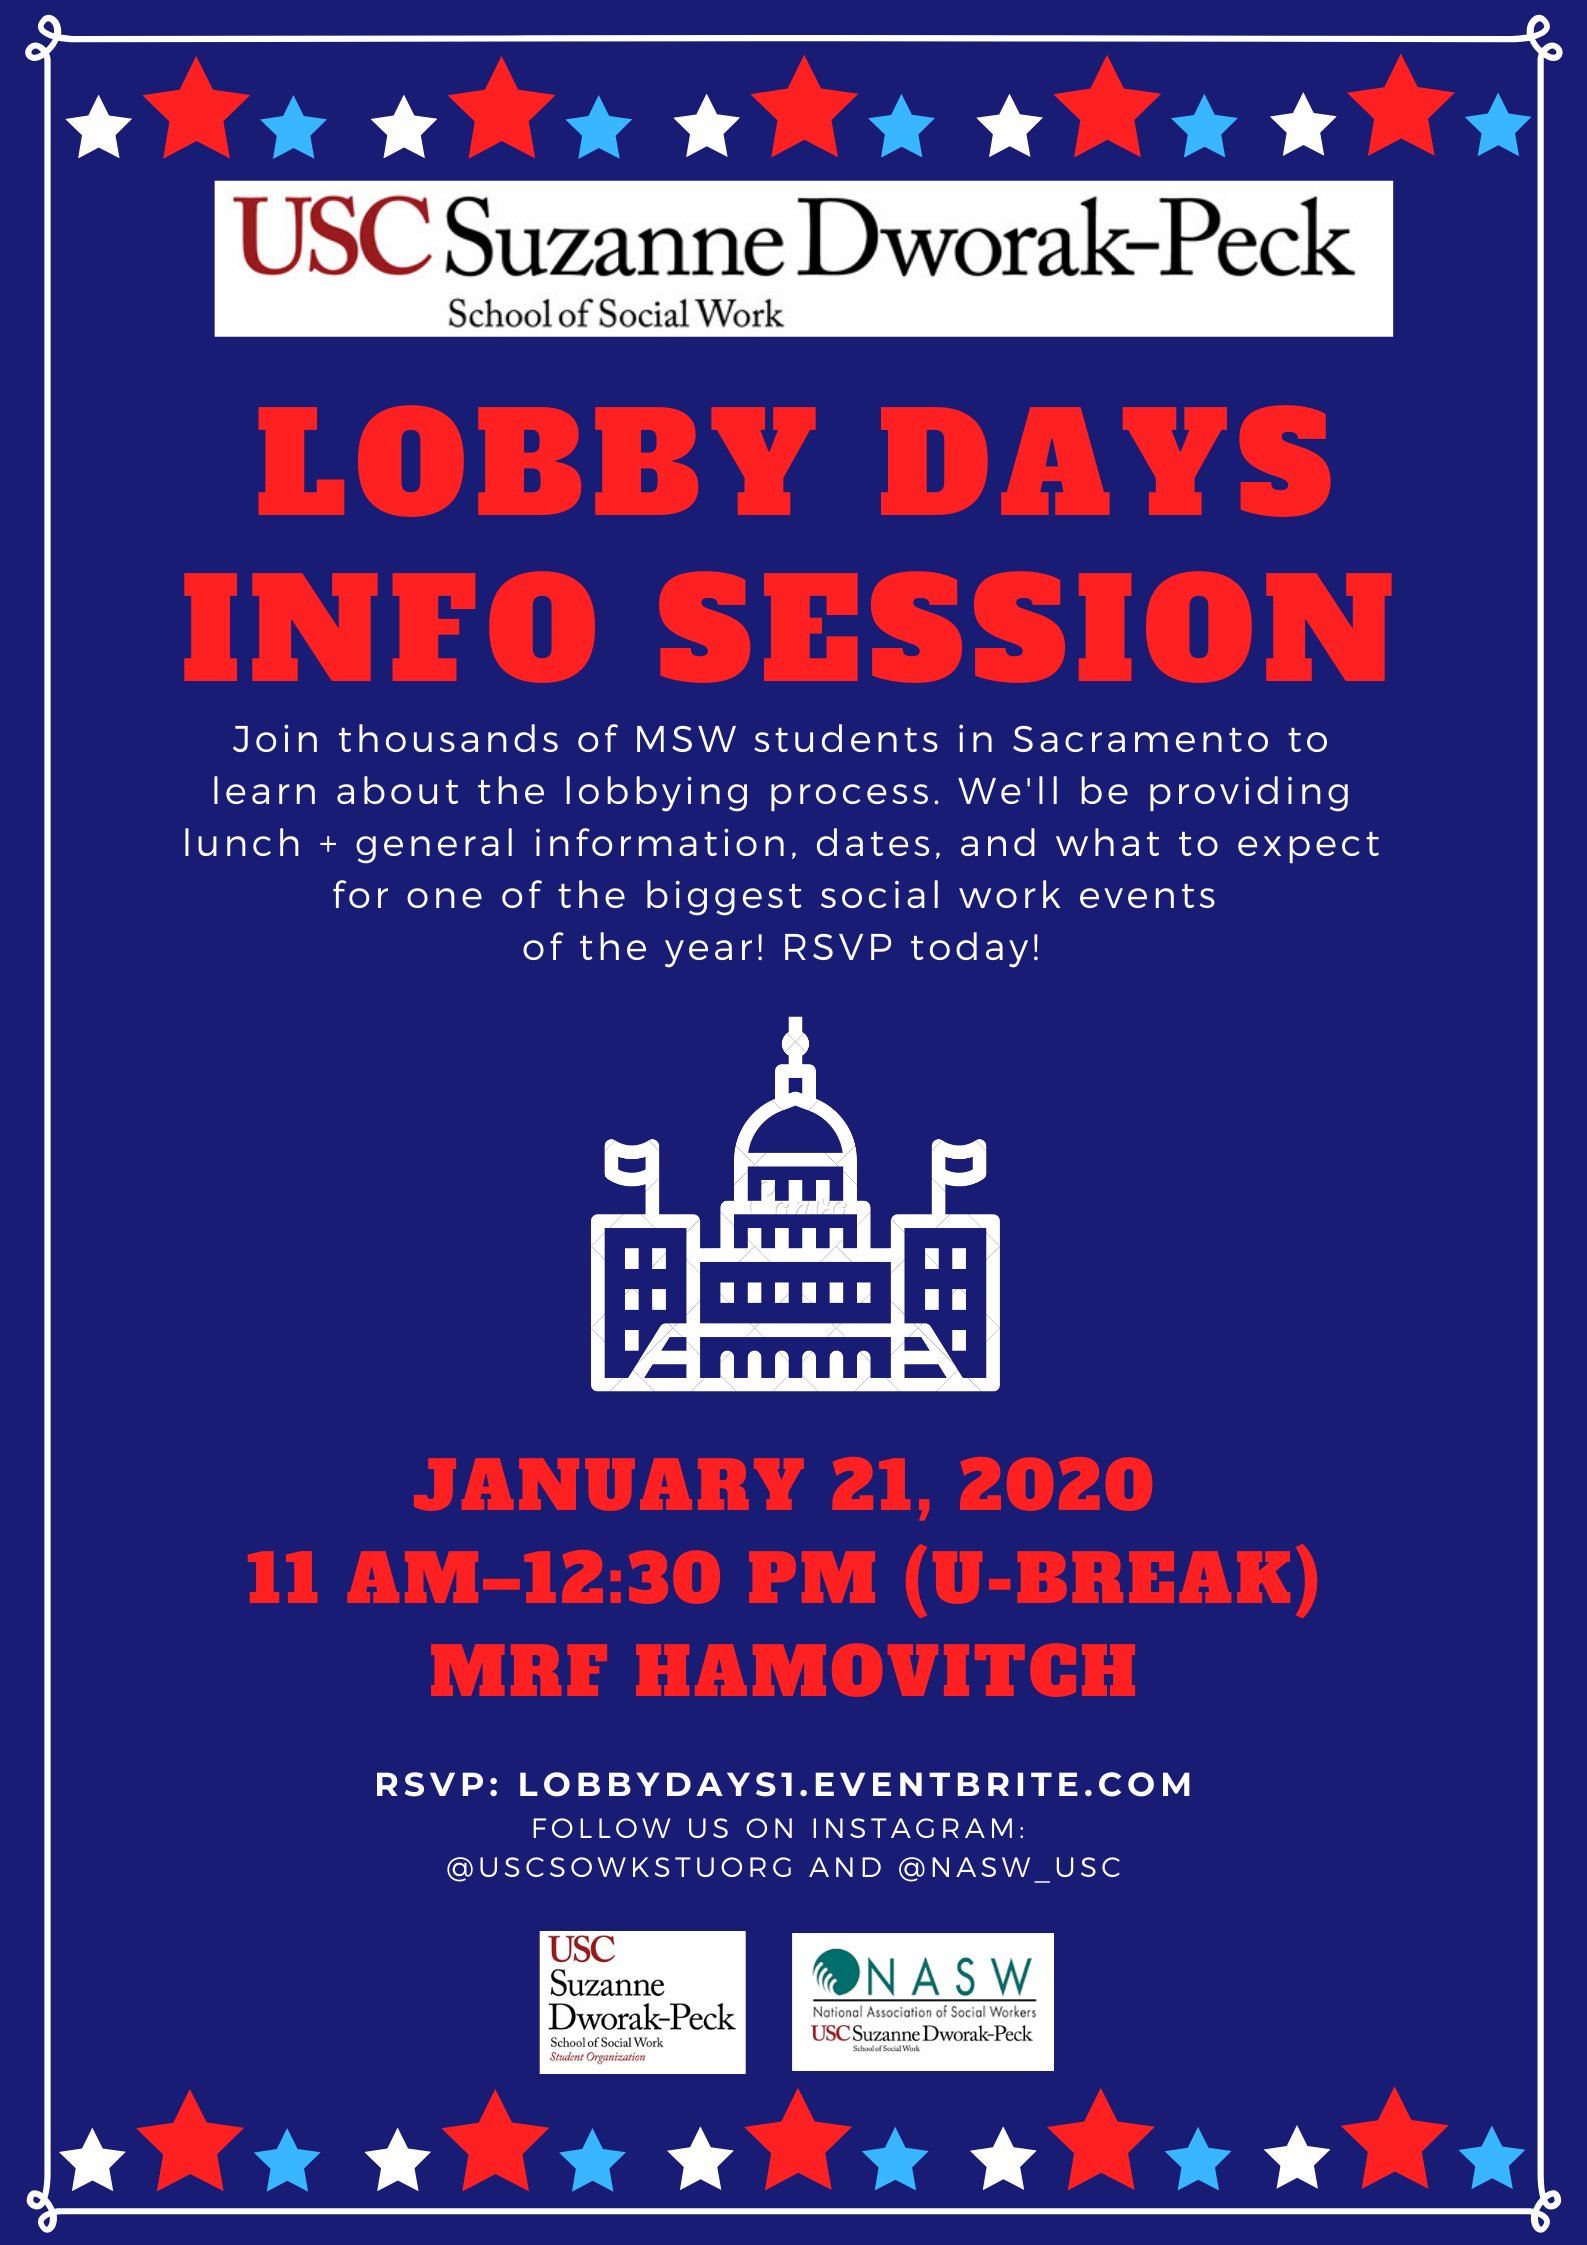 Usc Fall Semester 2020.Lobby Days Info Session Registration Tue Jan 21 2020 At